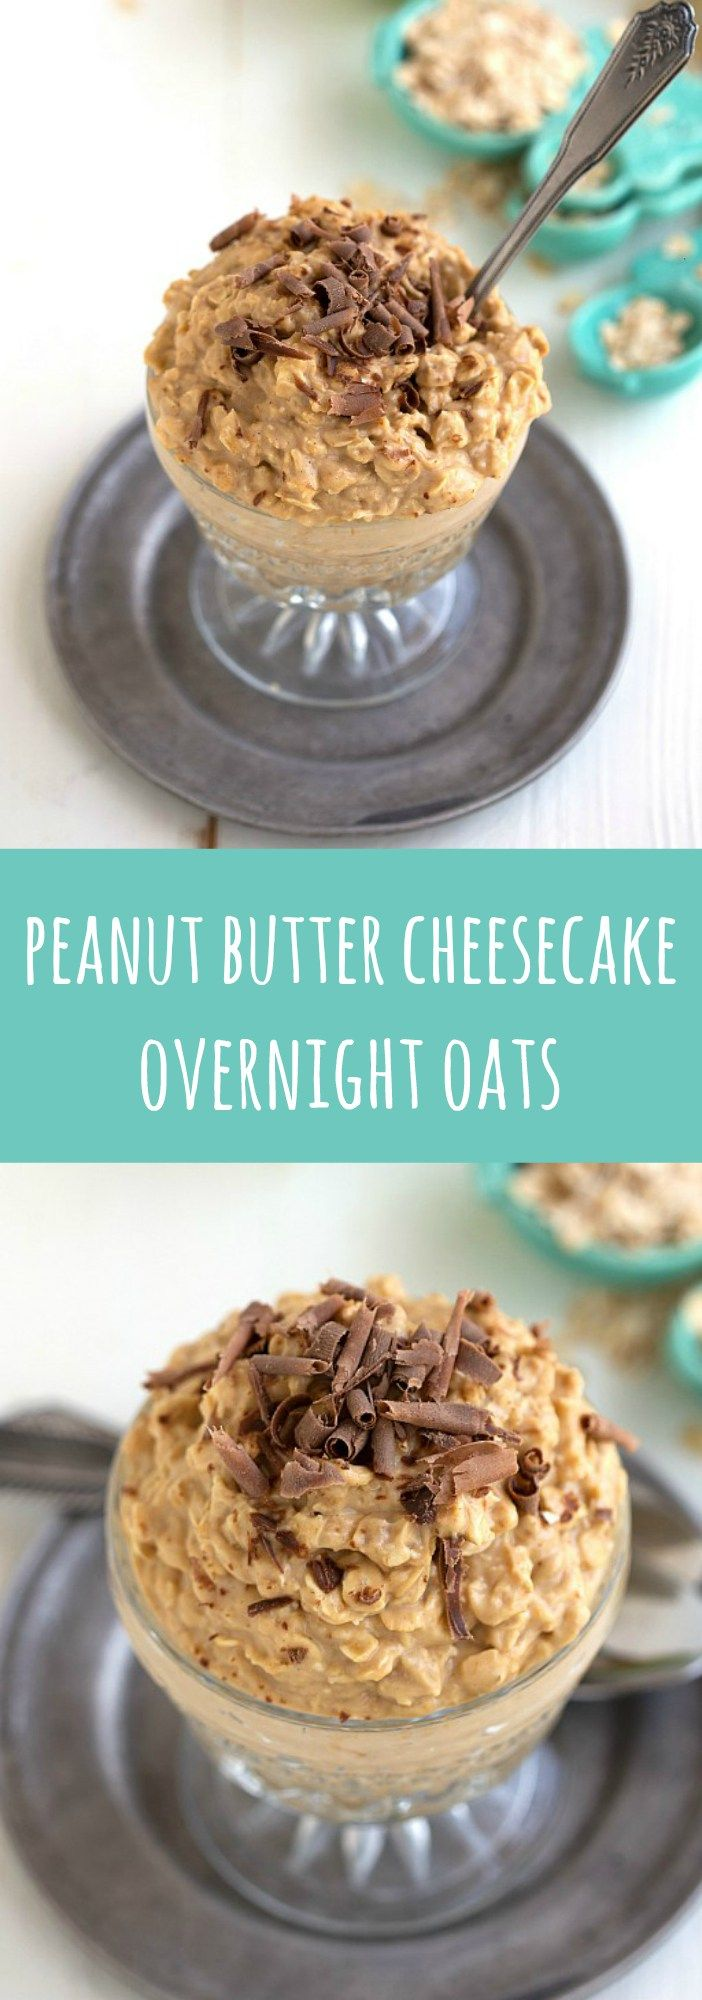 Delicious and easy peanut butter cheesecake overnight oats!